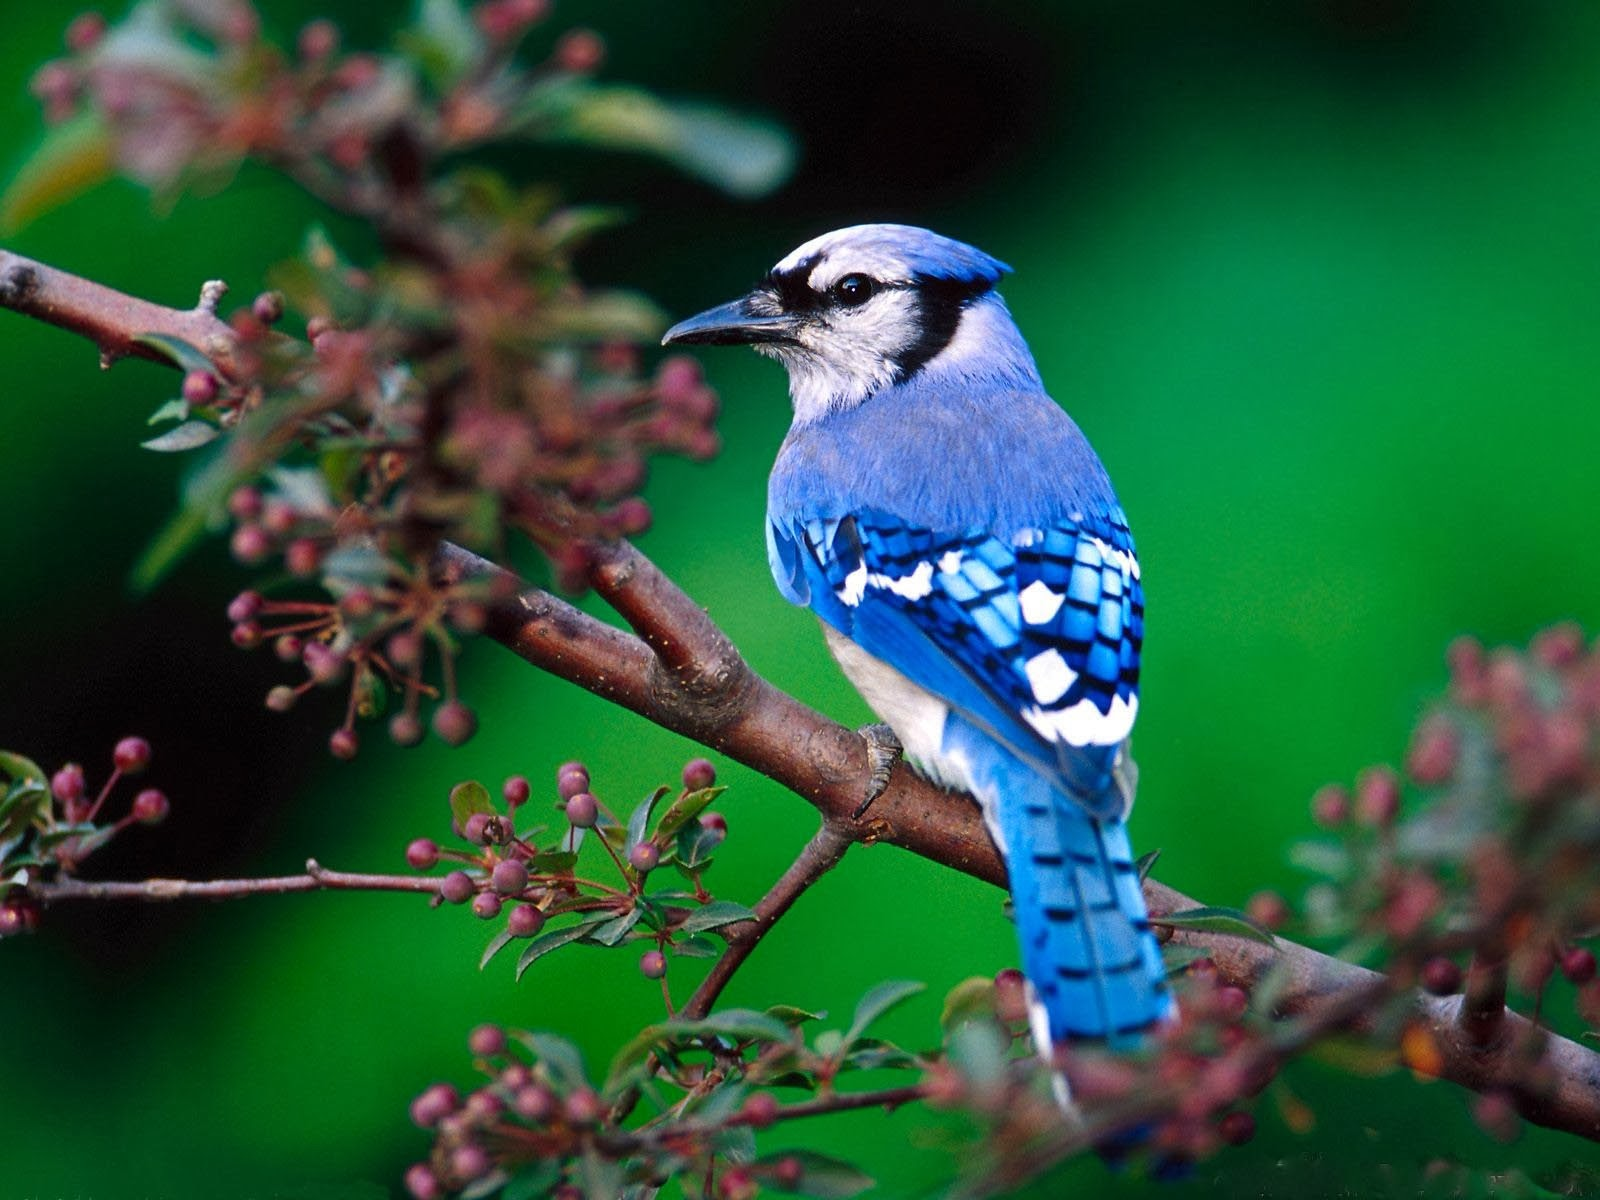 Hd wallpaper khubsurat - Bird Wallpaper